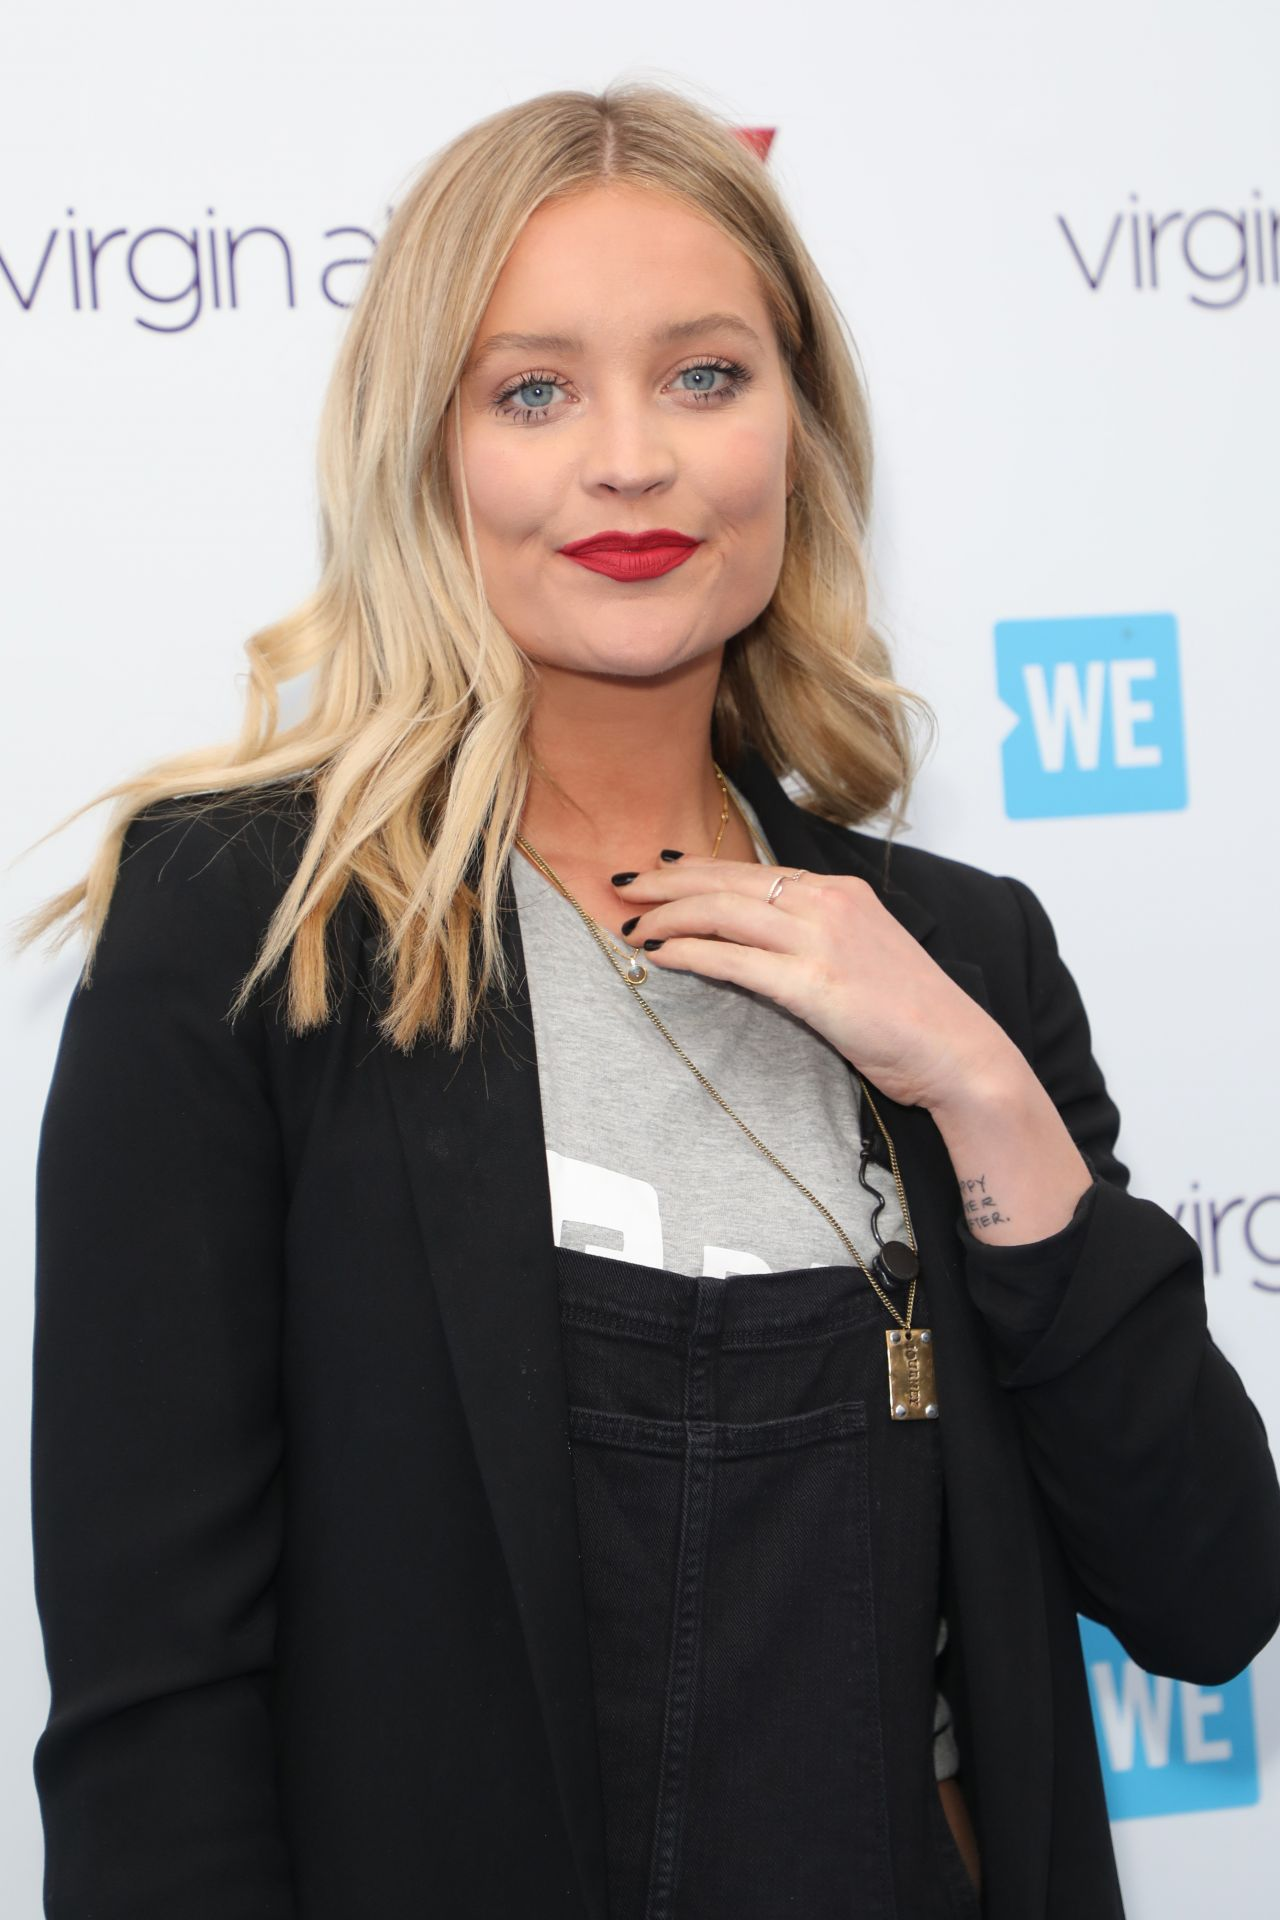 Laura Whitmore We Day In London 03 07 2018